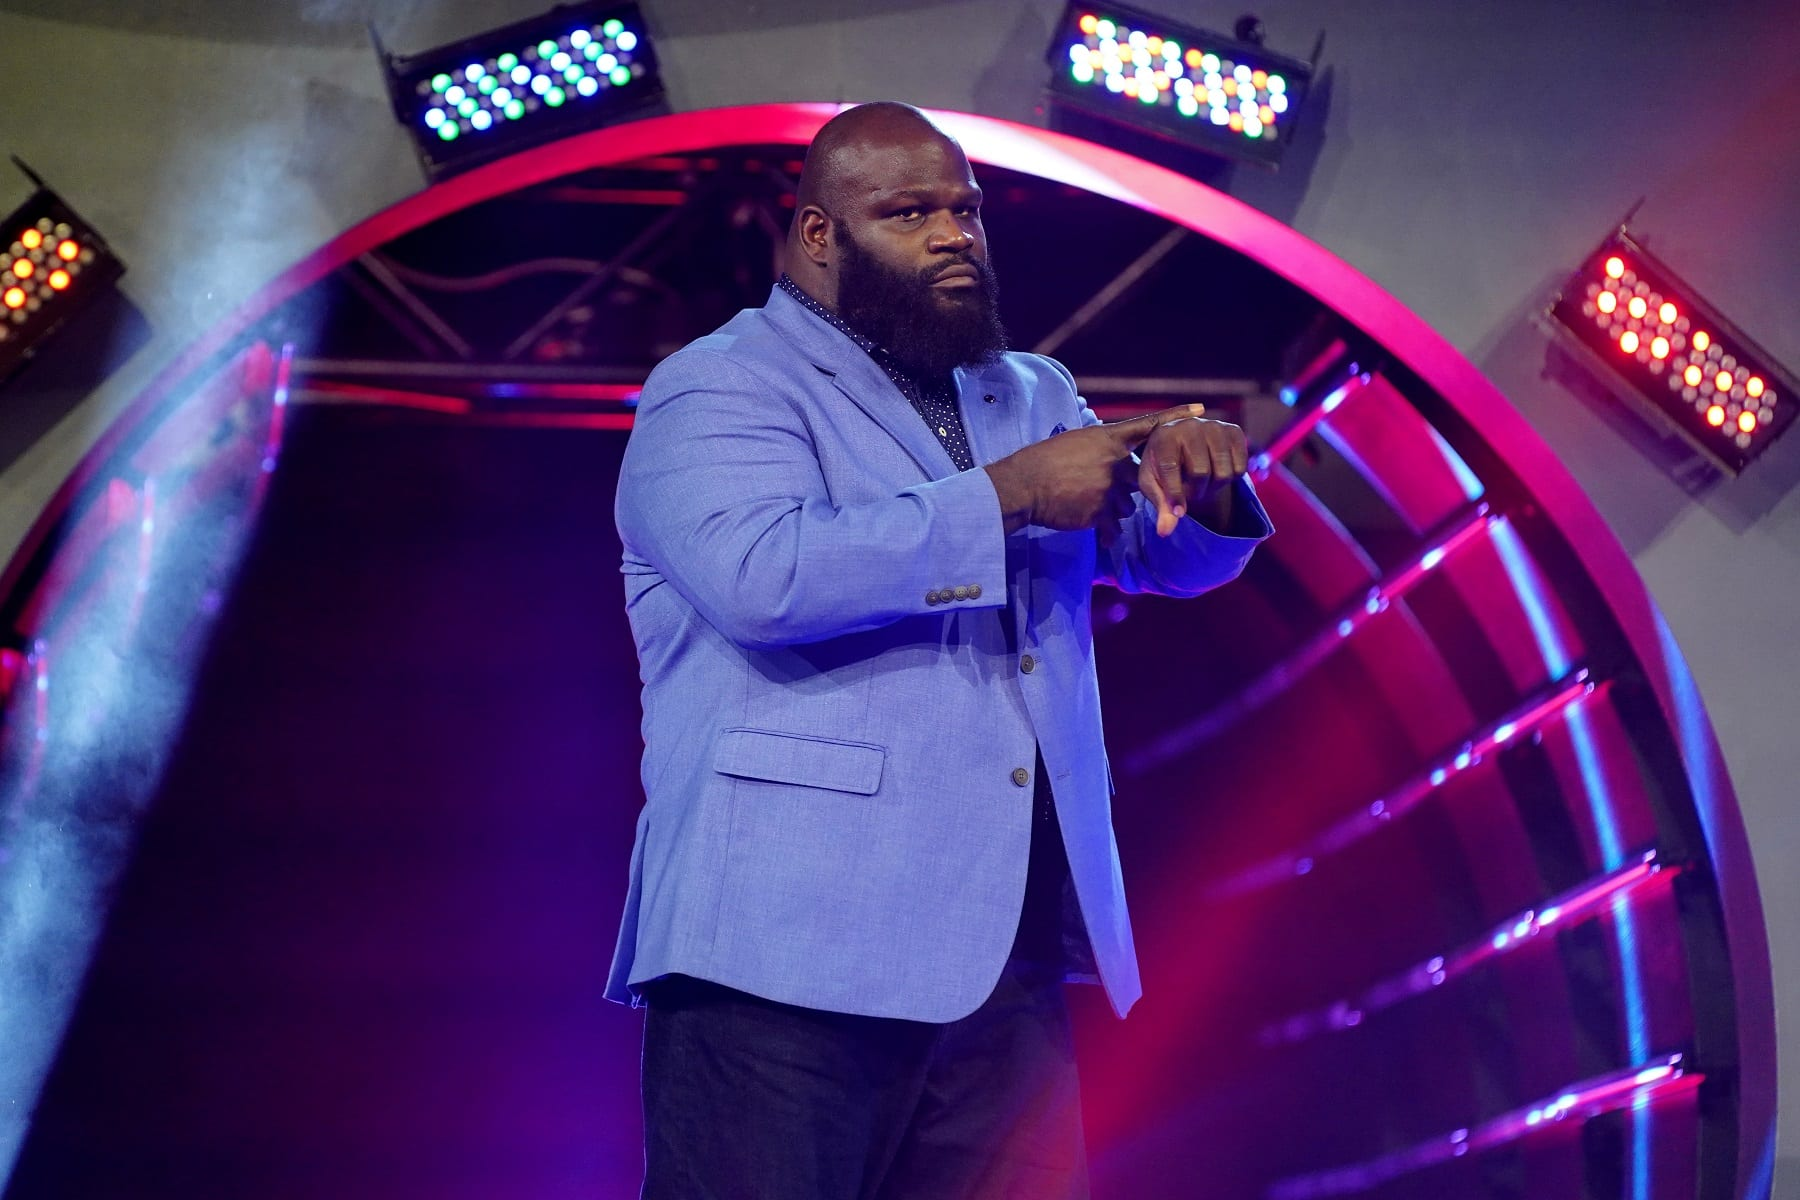 Mark Henry Talks Being Loyal To Vince McMahon, Having Other Offers Over The Years